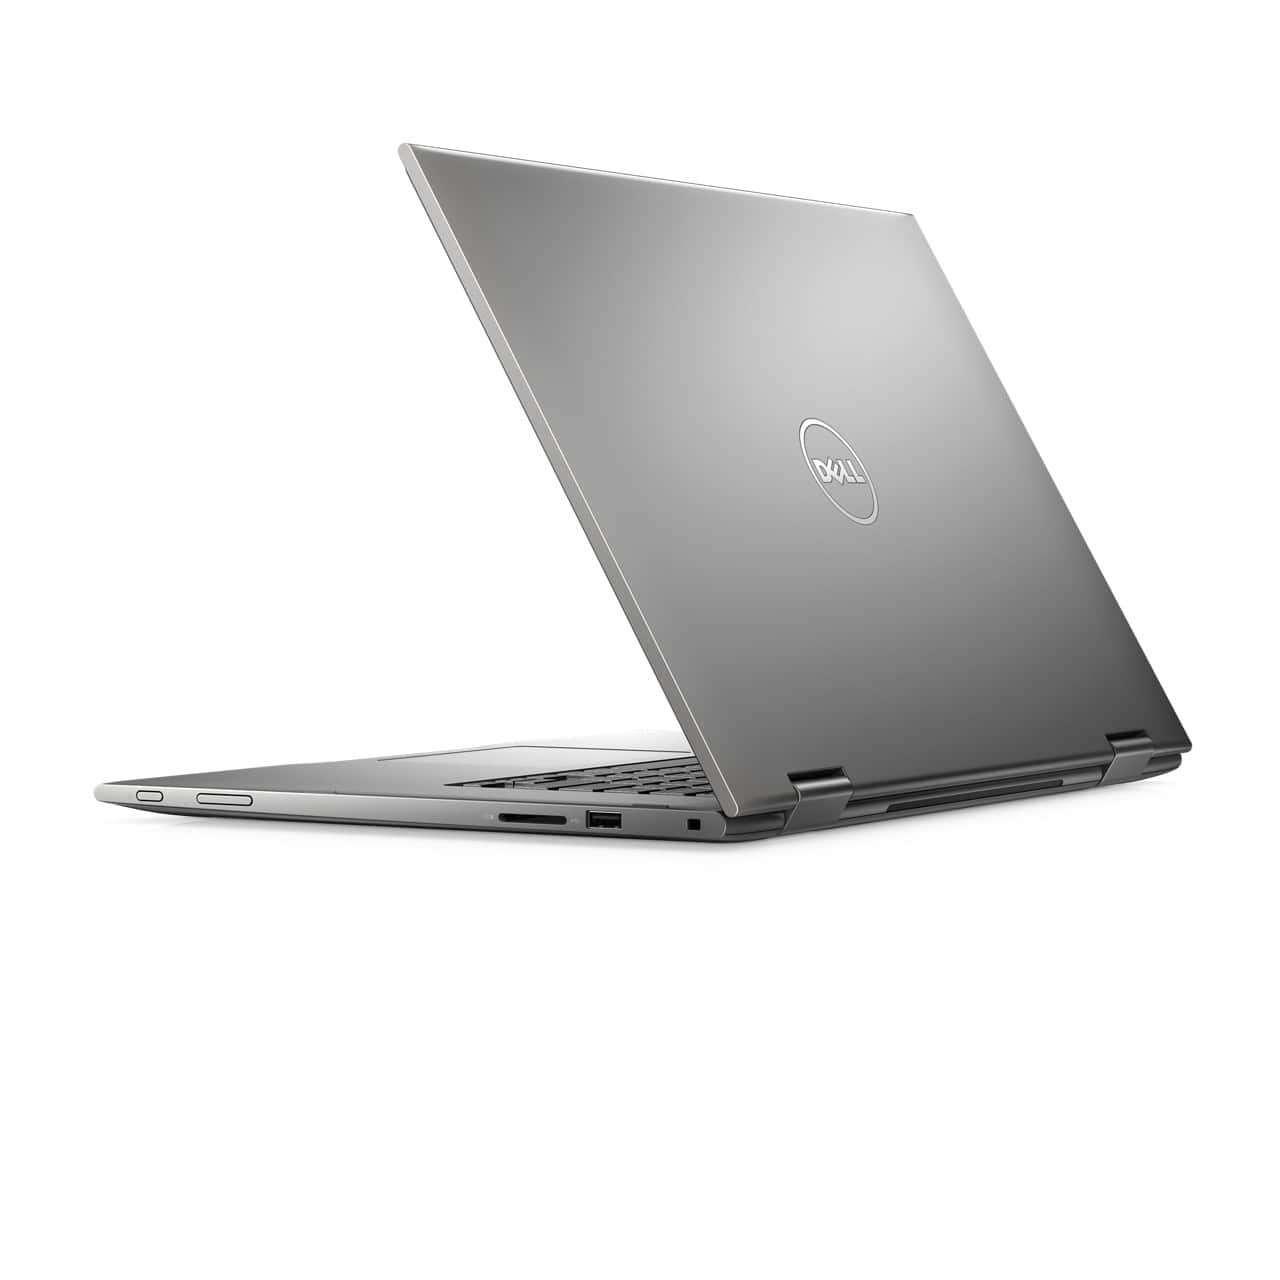 Dell Inspiron 15 5000 2-in-1 i5 8GB RAM; 256 GB SSD Laptop: $559.99 AC + Free Shipping